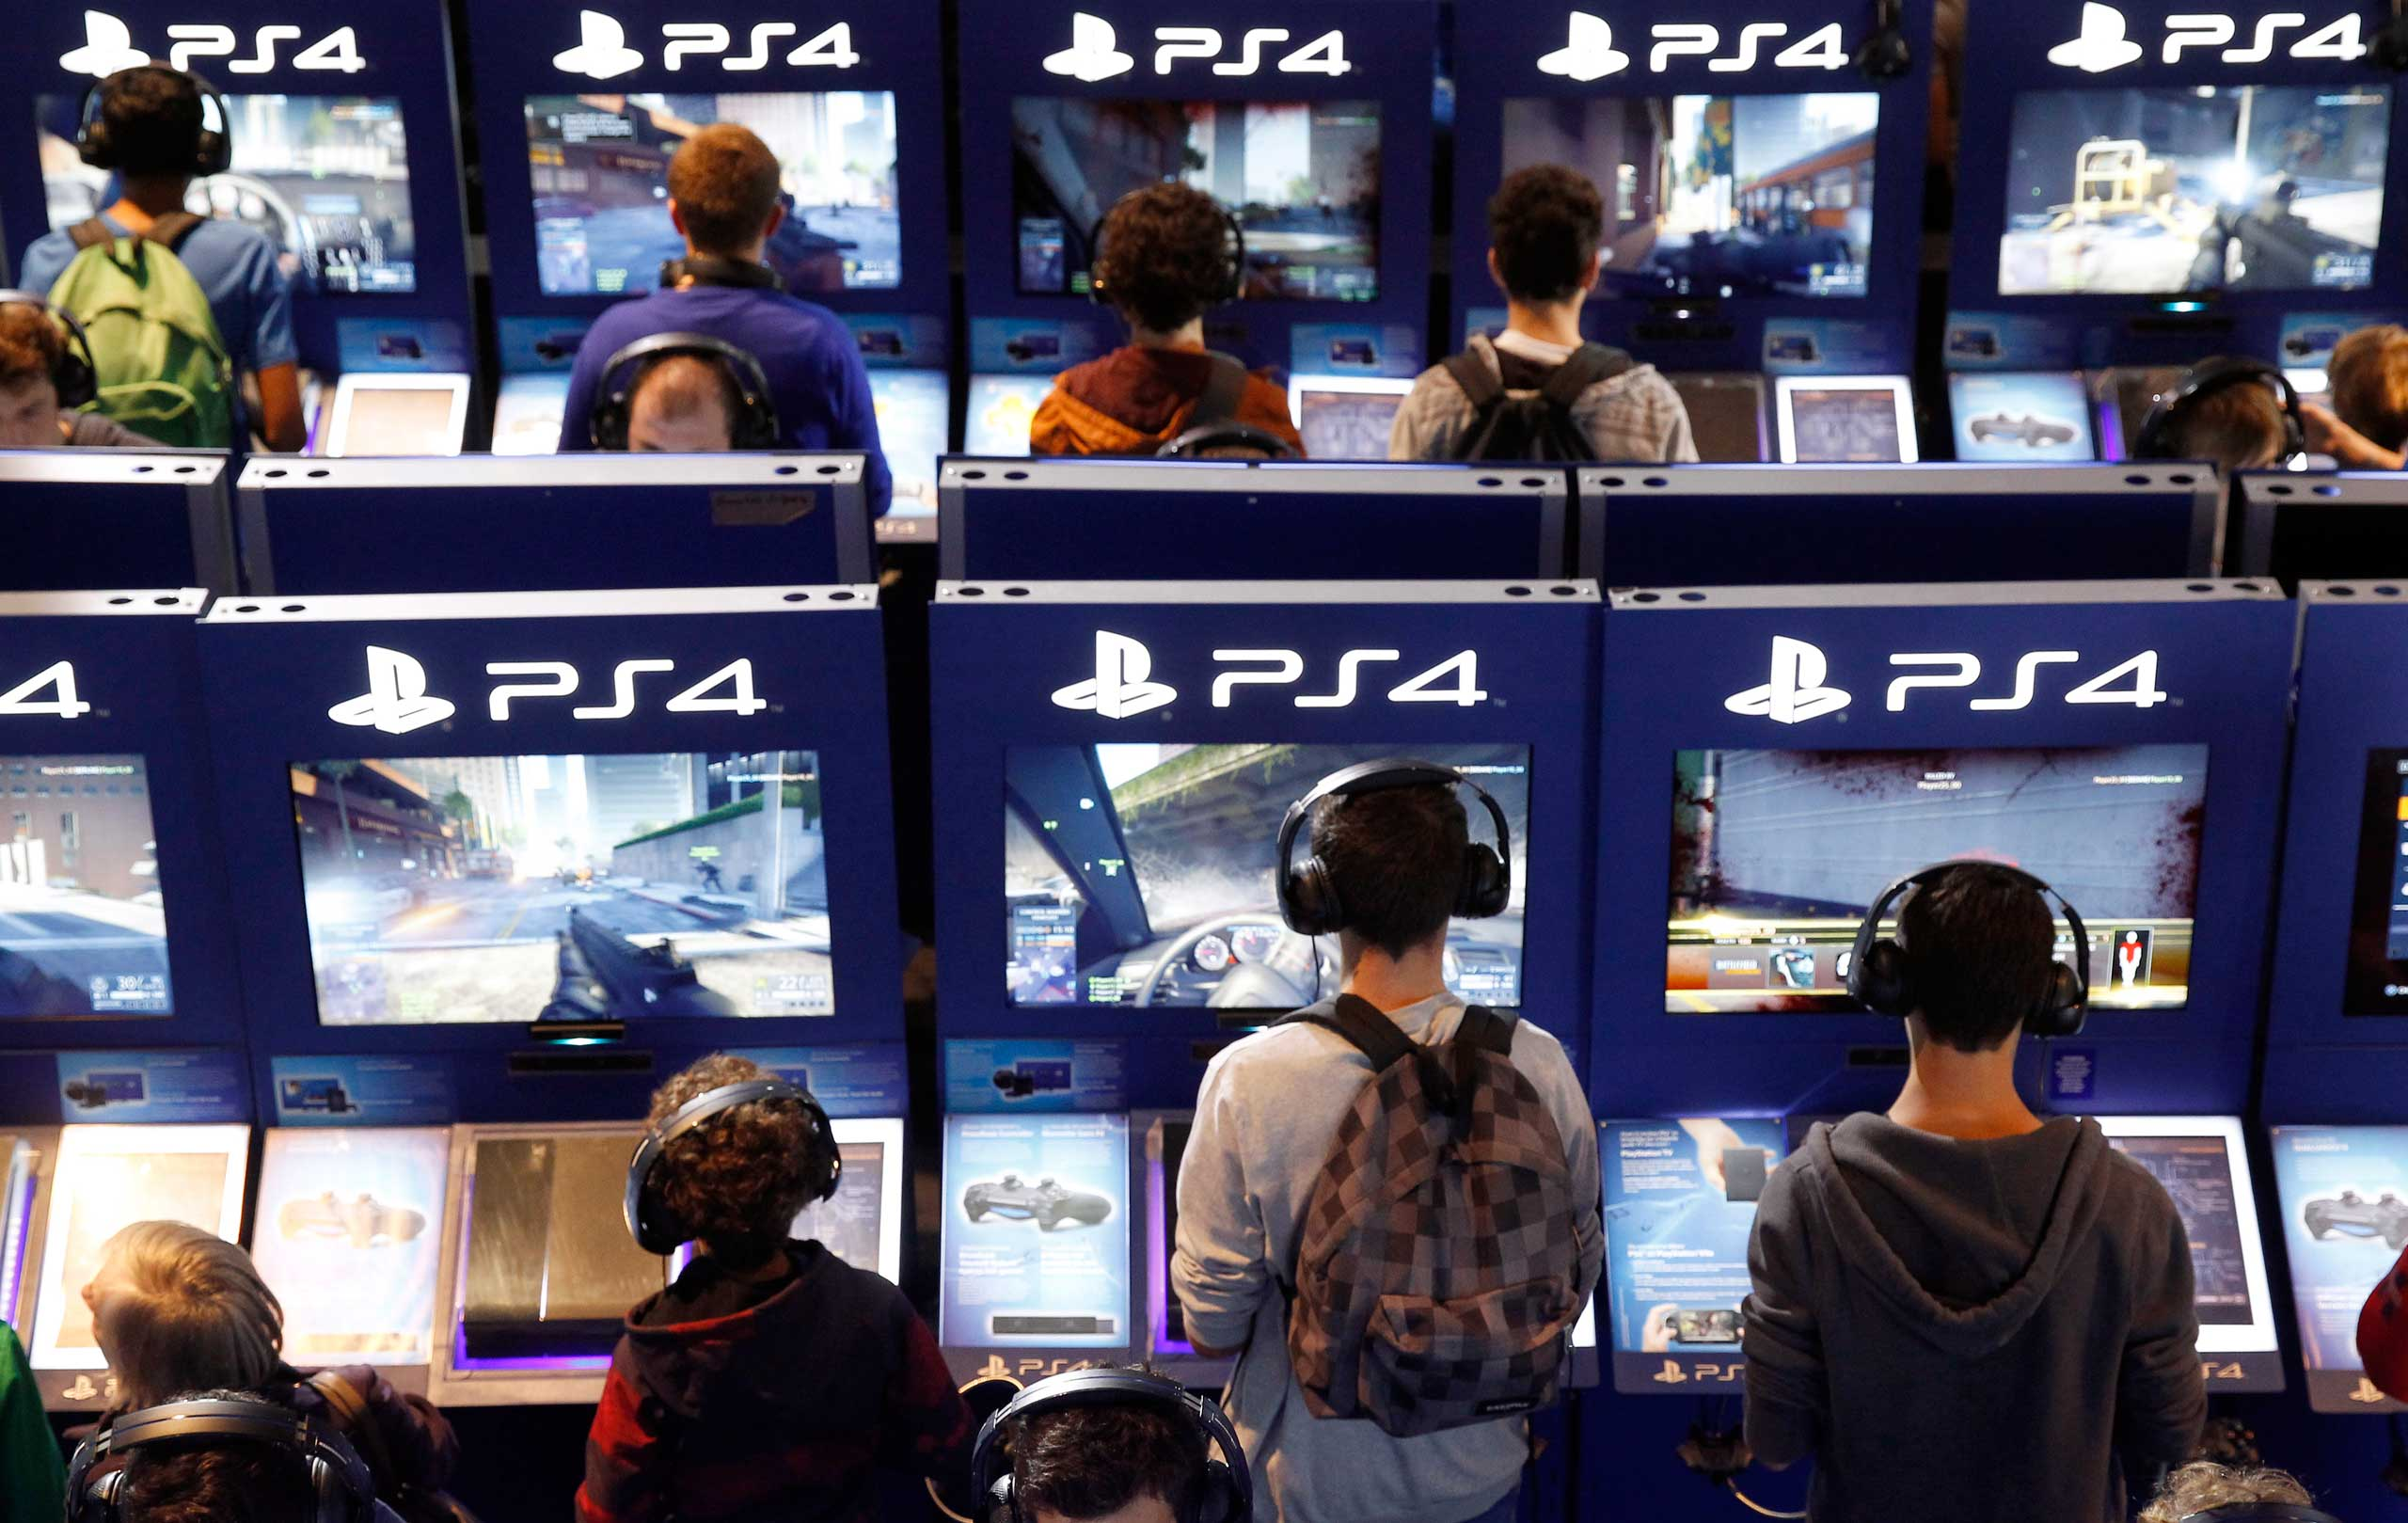 Gamers play video games with Playstation PS4 consoles during the International Games Week in Paris on Oct. 29, 2014.